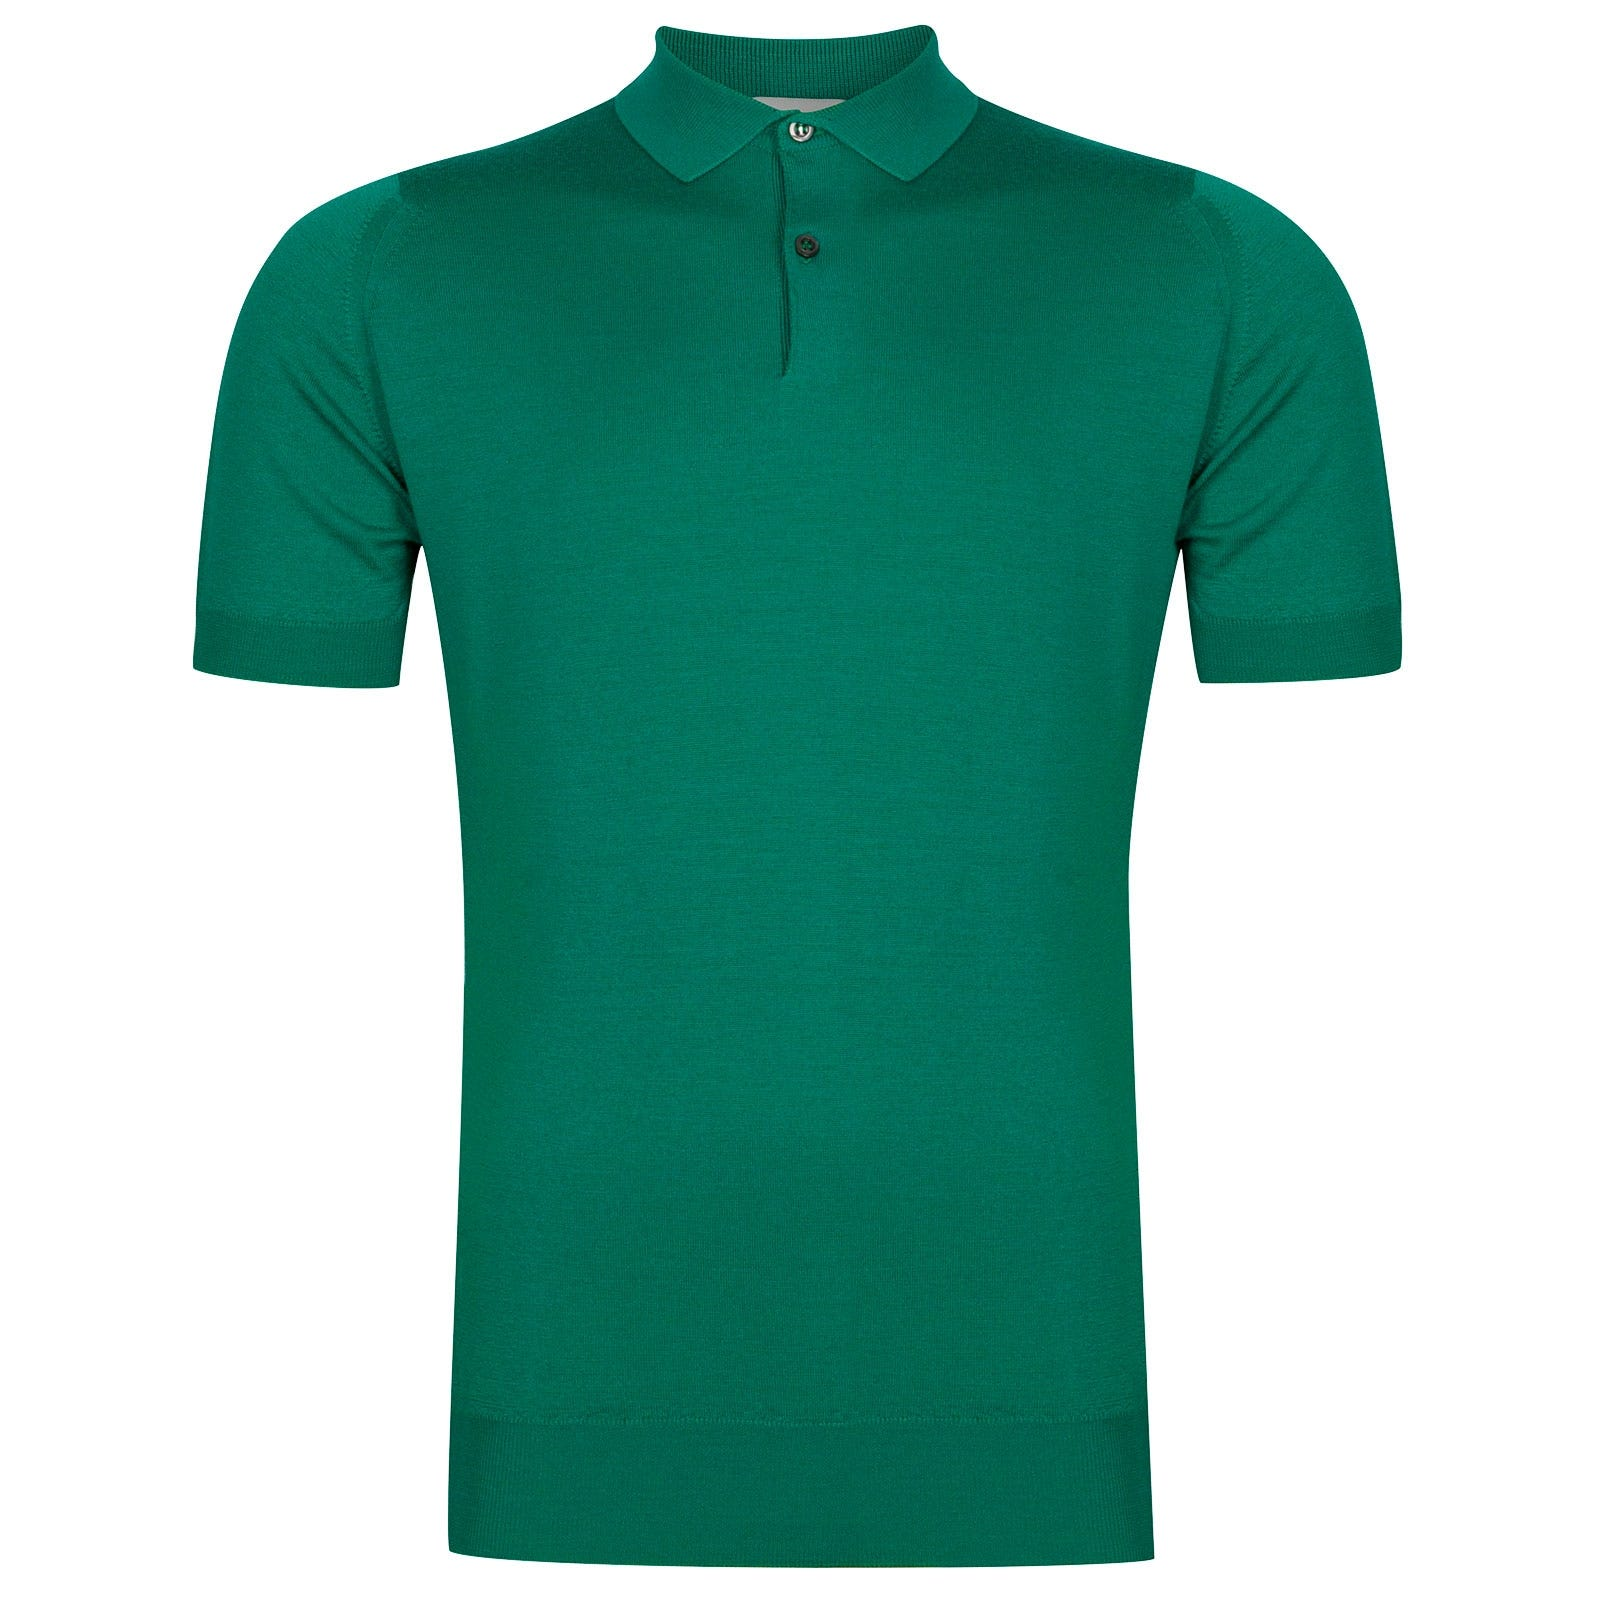 John Smedley Payton Merino Wool Shirt in Boron Green-XL